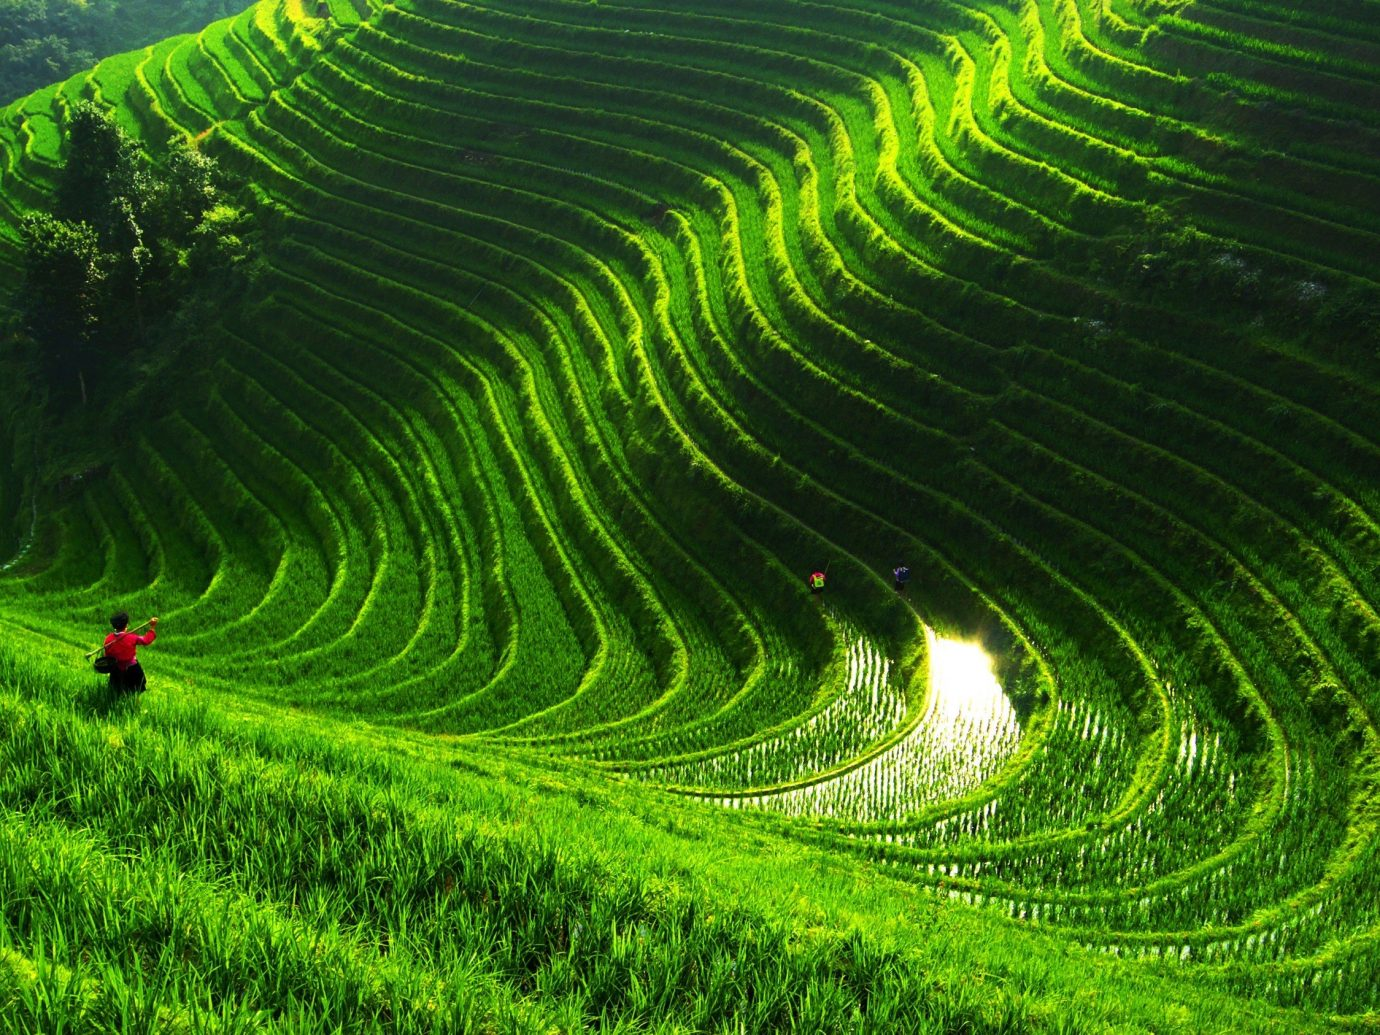 Offbeat grass green agriculture geographical feature field Terrace outdoor red paddy field grassland leaf landscape crop plantation plain flower